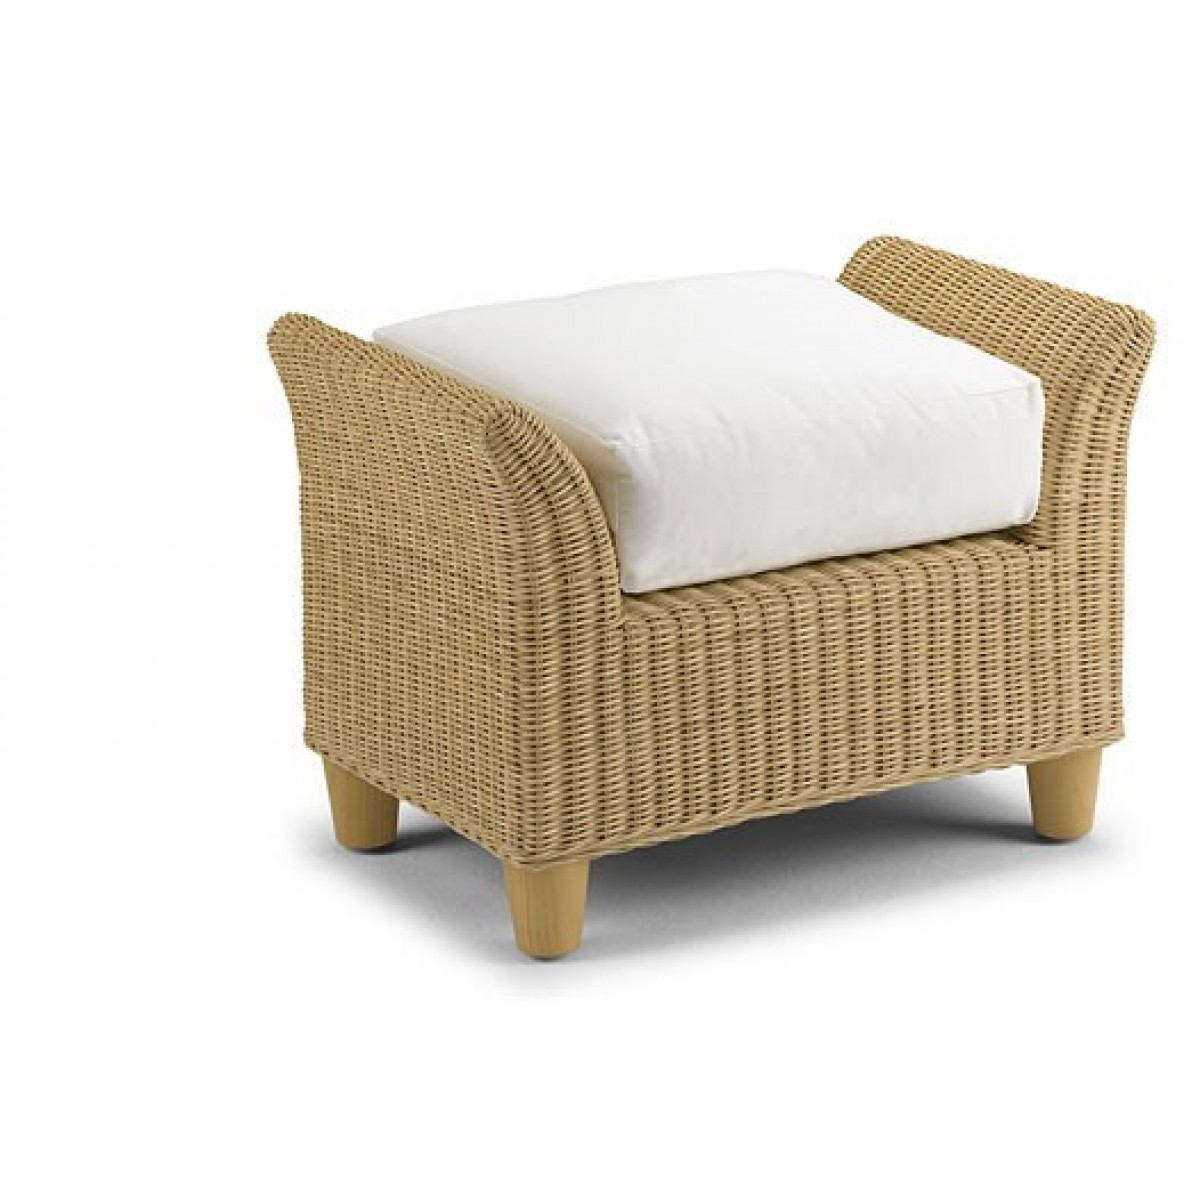 MGM Aintree Footstool   We beat on-line prices! 2537941e916